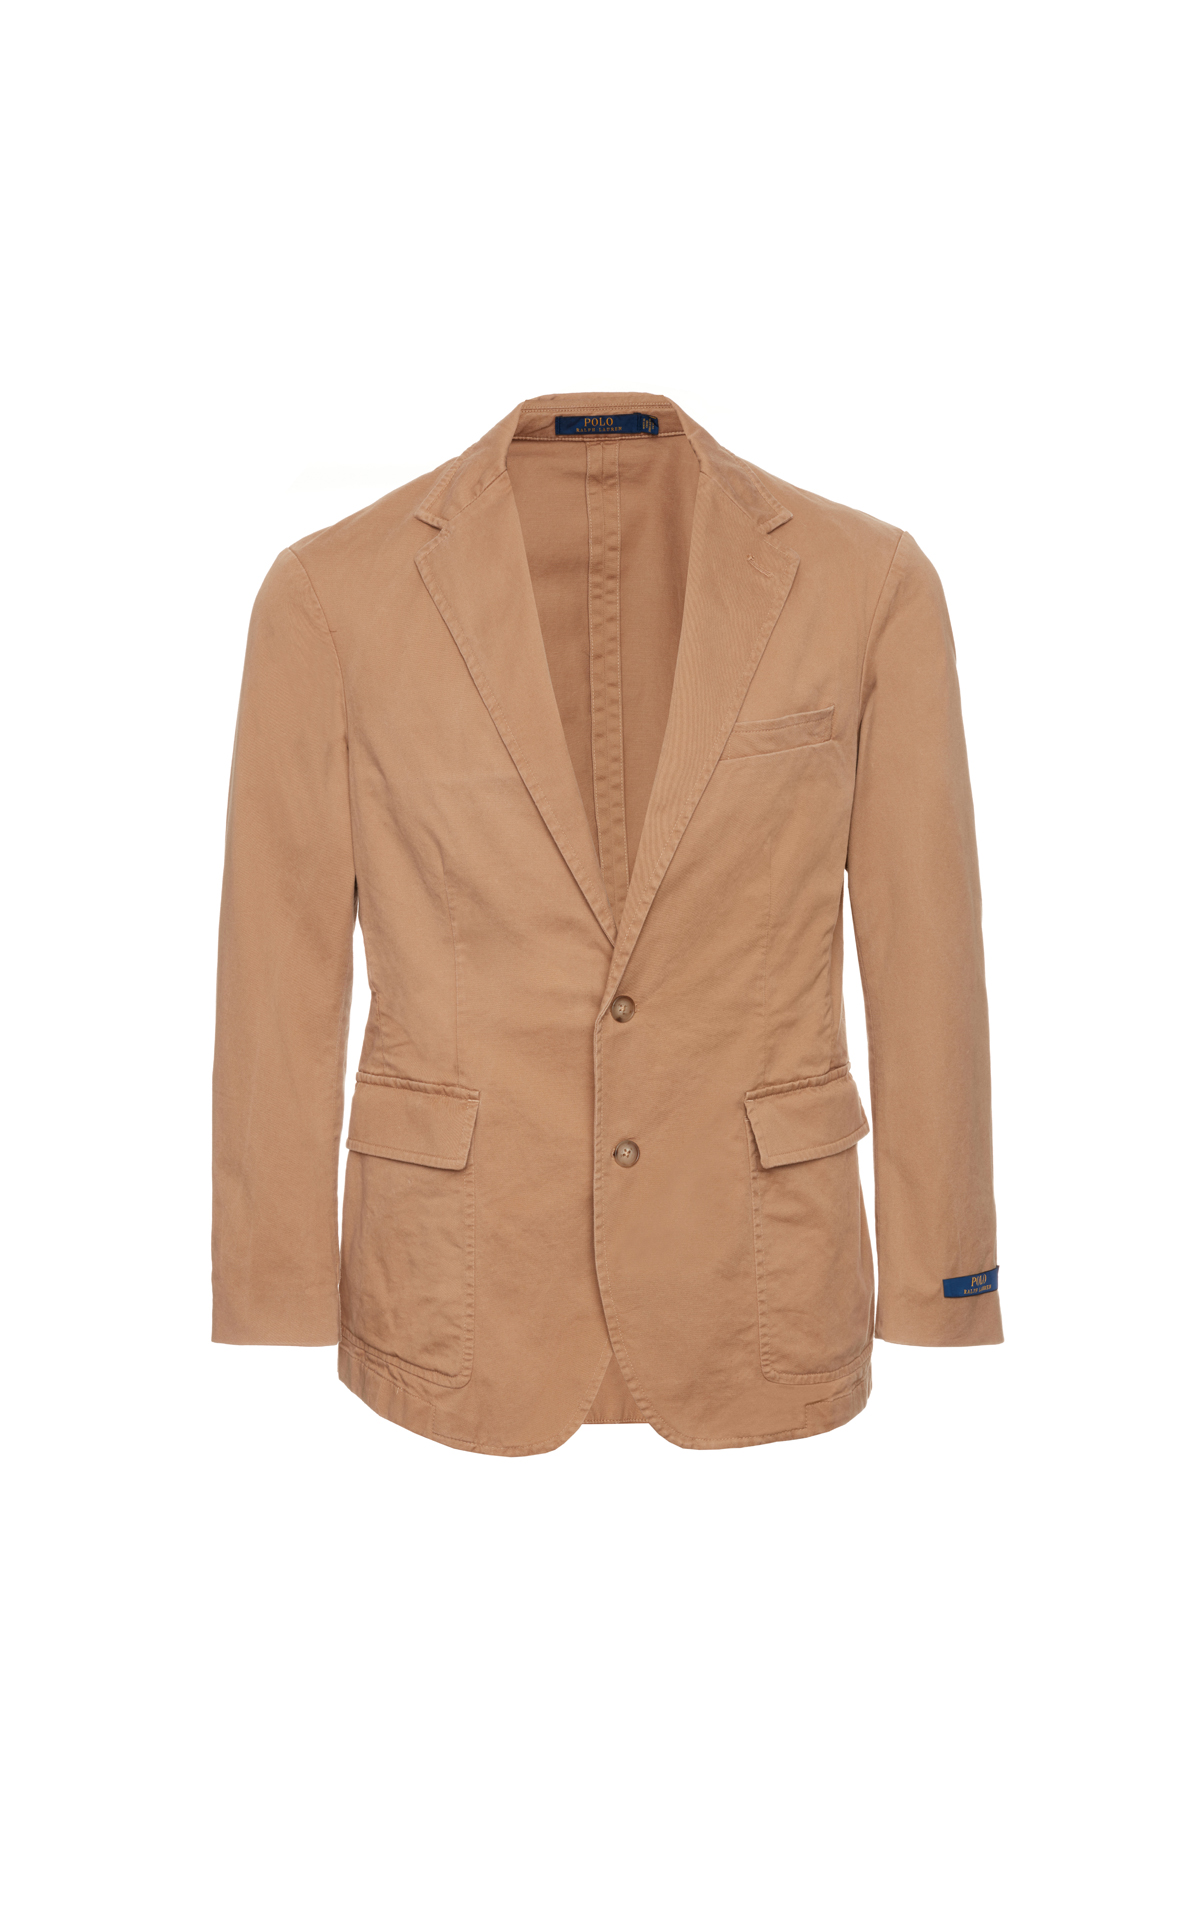 Polo Ralph Lauren Men's PU 2bottons HRVD Sport Coat at The Bicester Village Shopping Collection